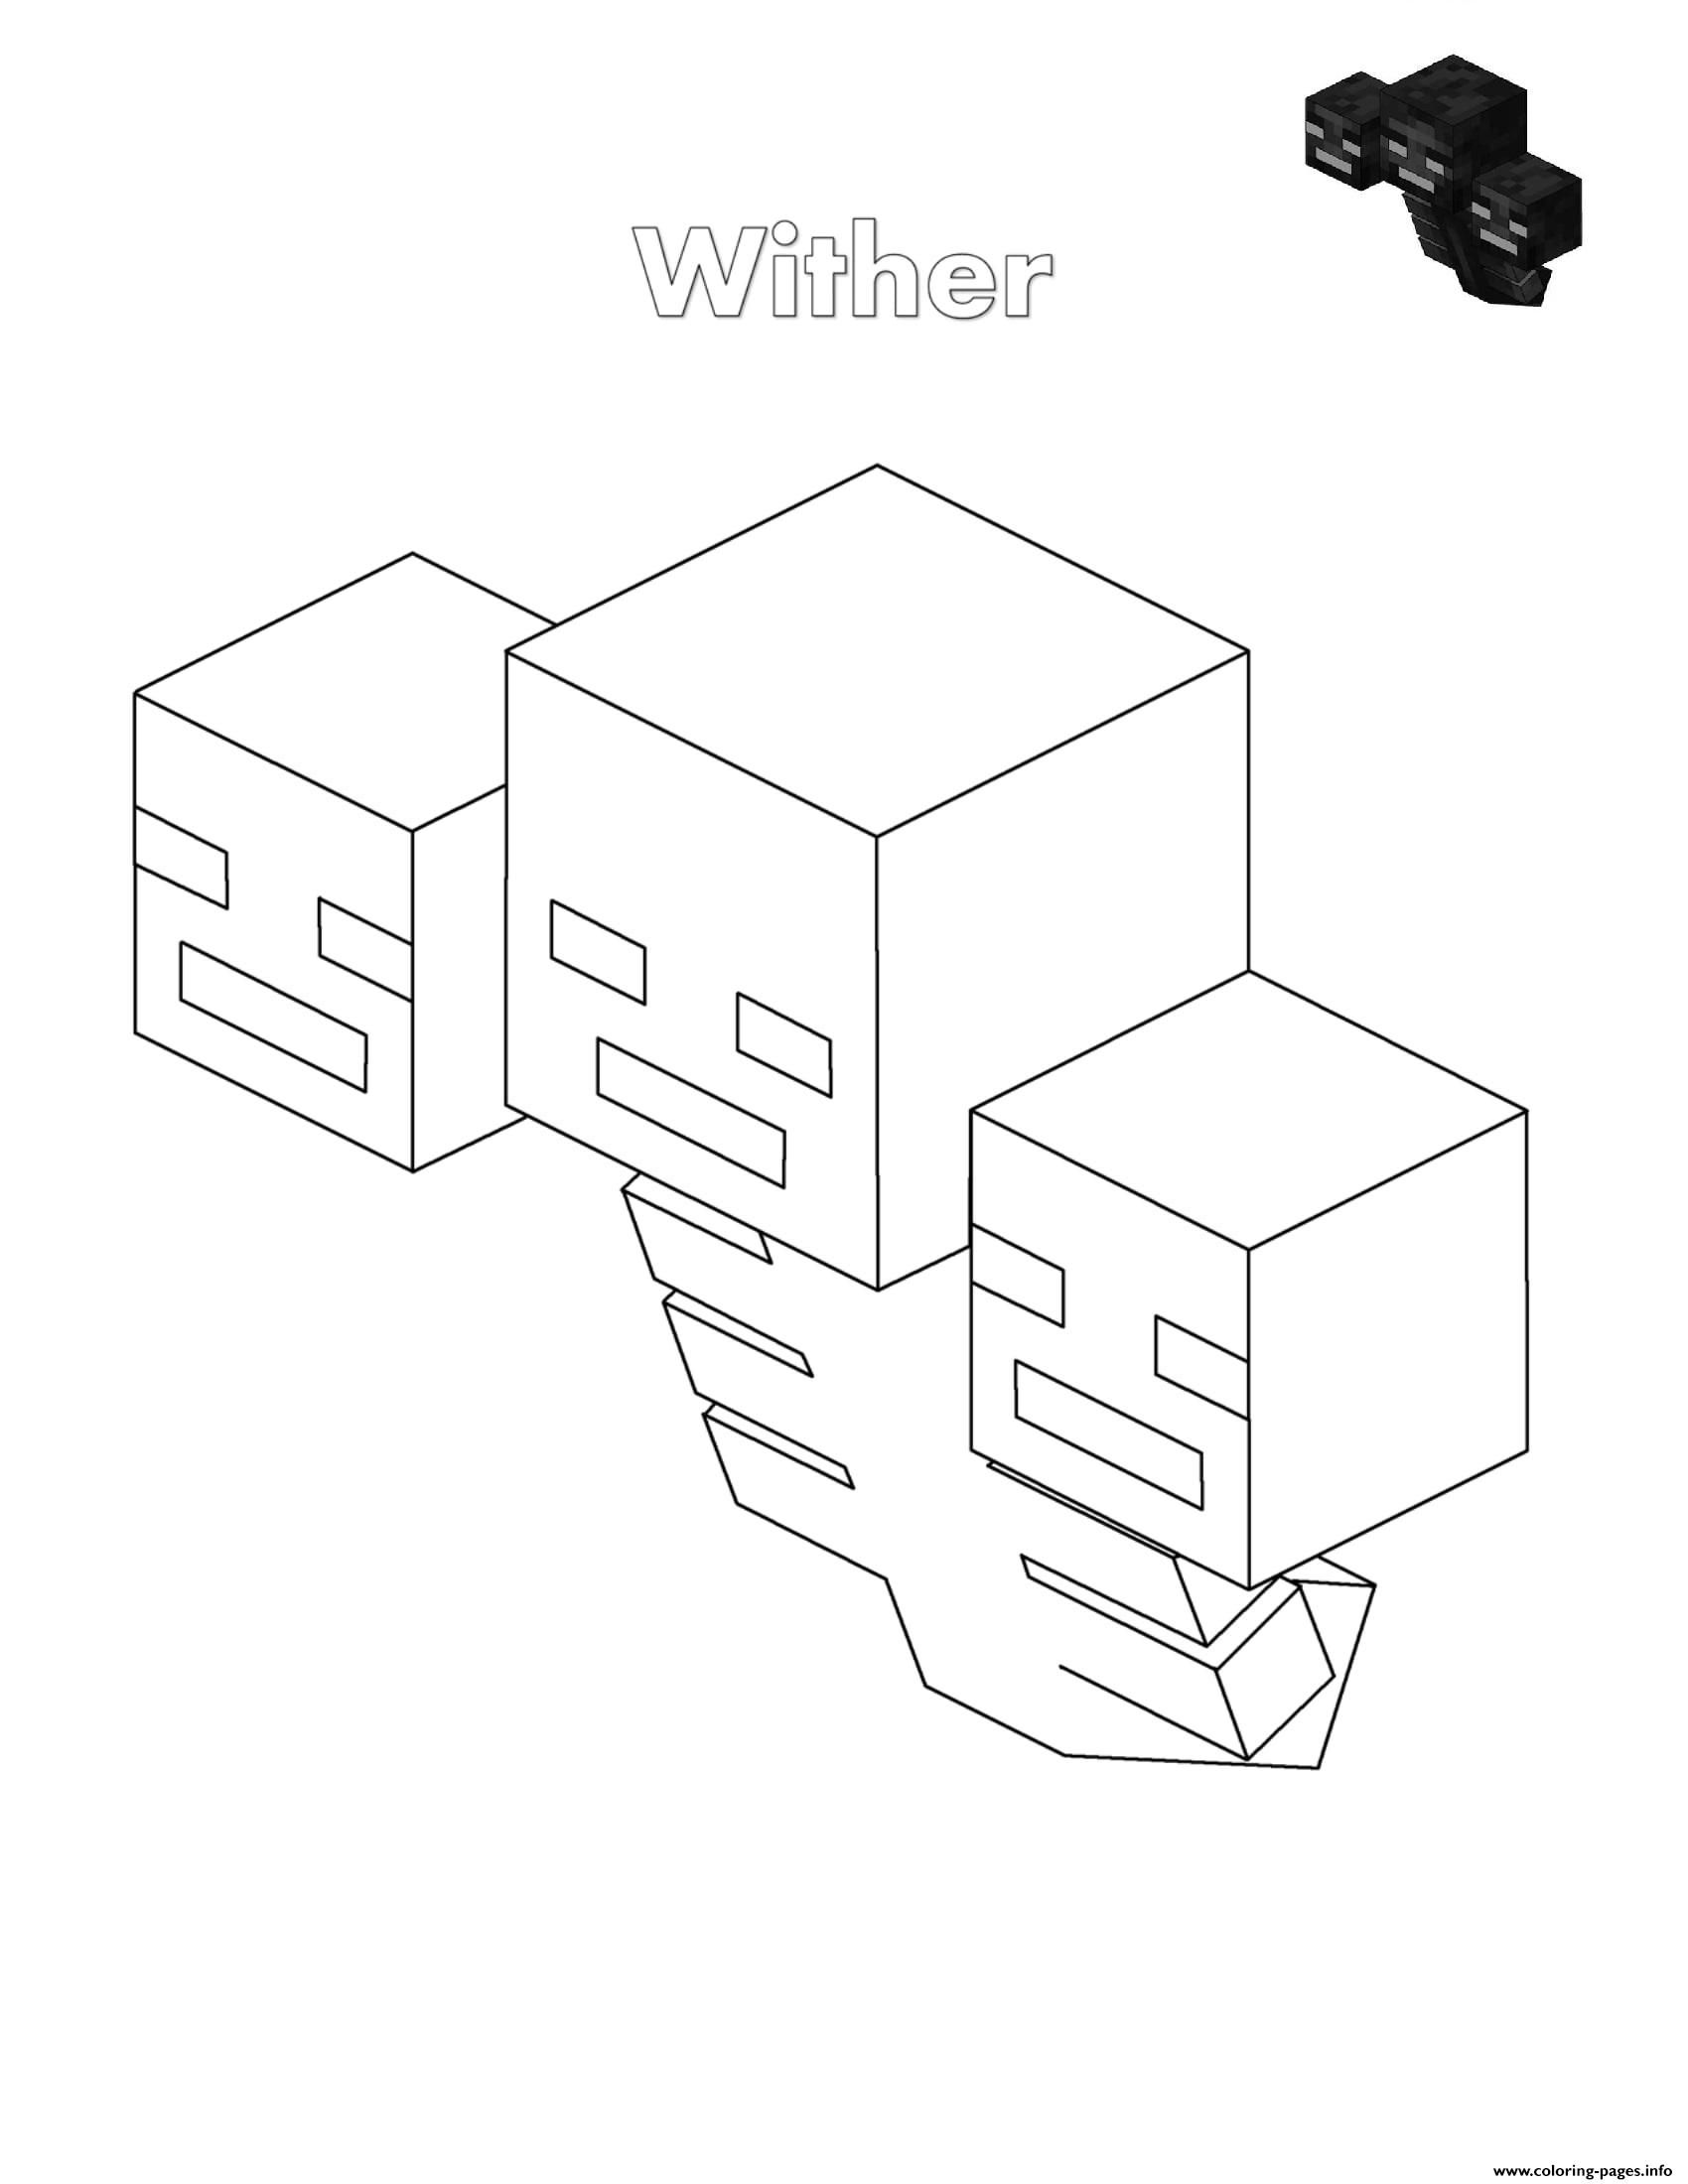 Google Image Result For Https Cdn Clipart Email 6feaa9606133d5e2873e8b9db11365d7 Coffee Table Col Minecraft Coloring Pages Lego Coloring Pages Coloring Pages [ 2200 x 1700 Pixel ]